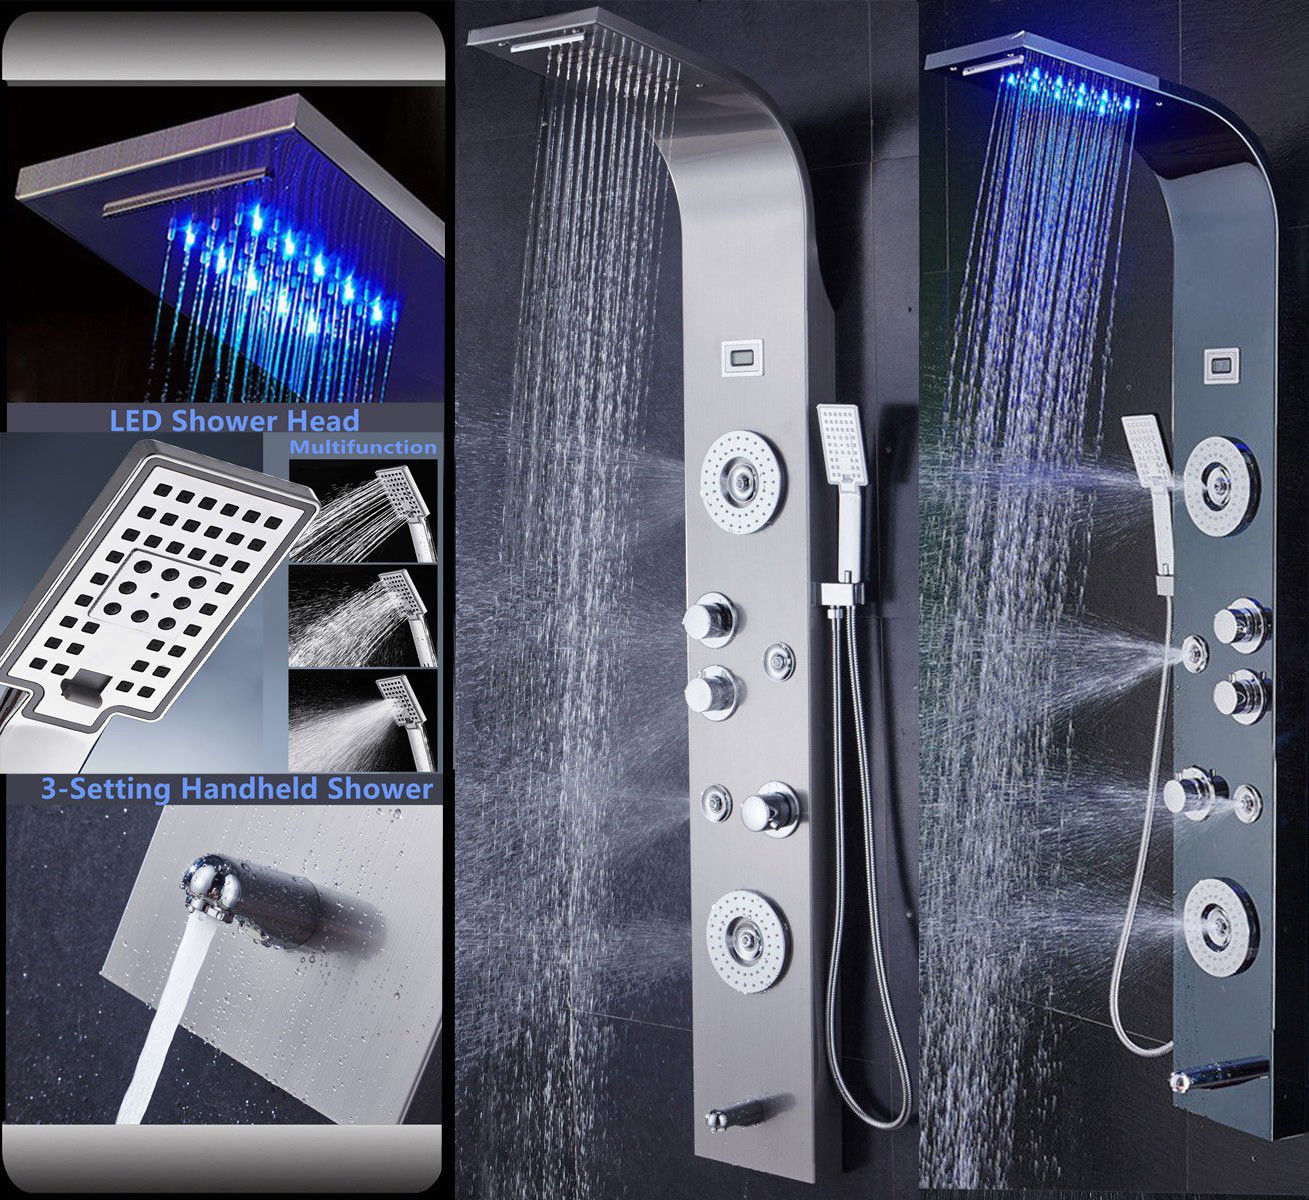 Led Stainless Steel Shower Panel Tower System Rainfall Waterfall Jets Mage Body Hand Shwoer Tub Spout In Faucets From Home